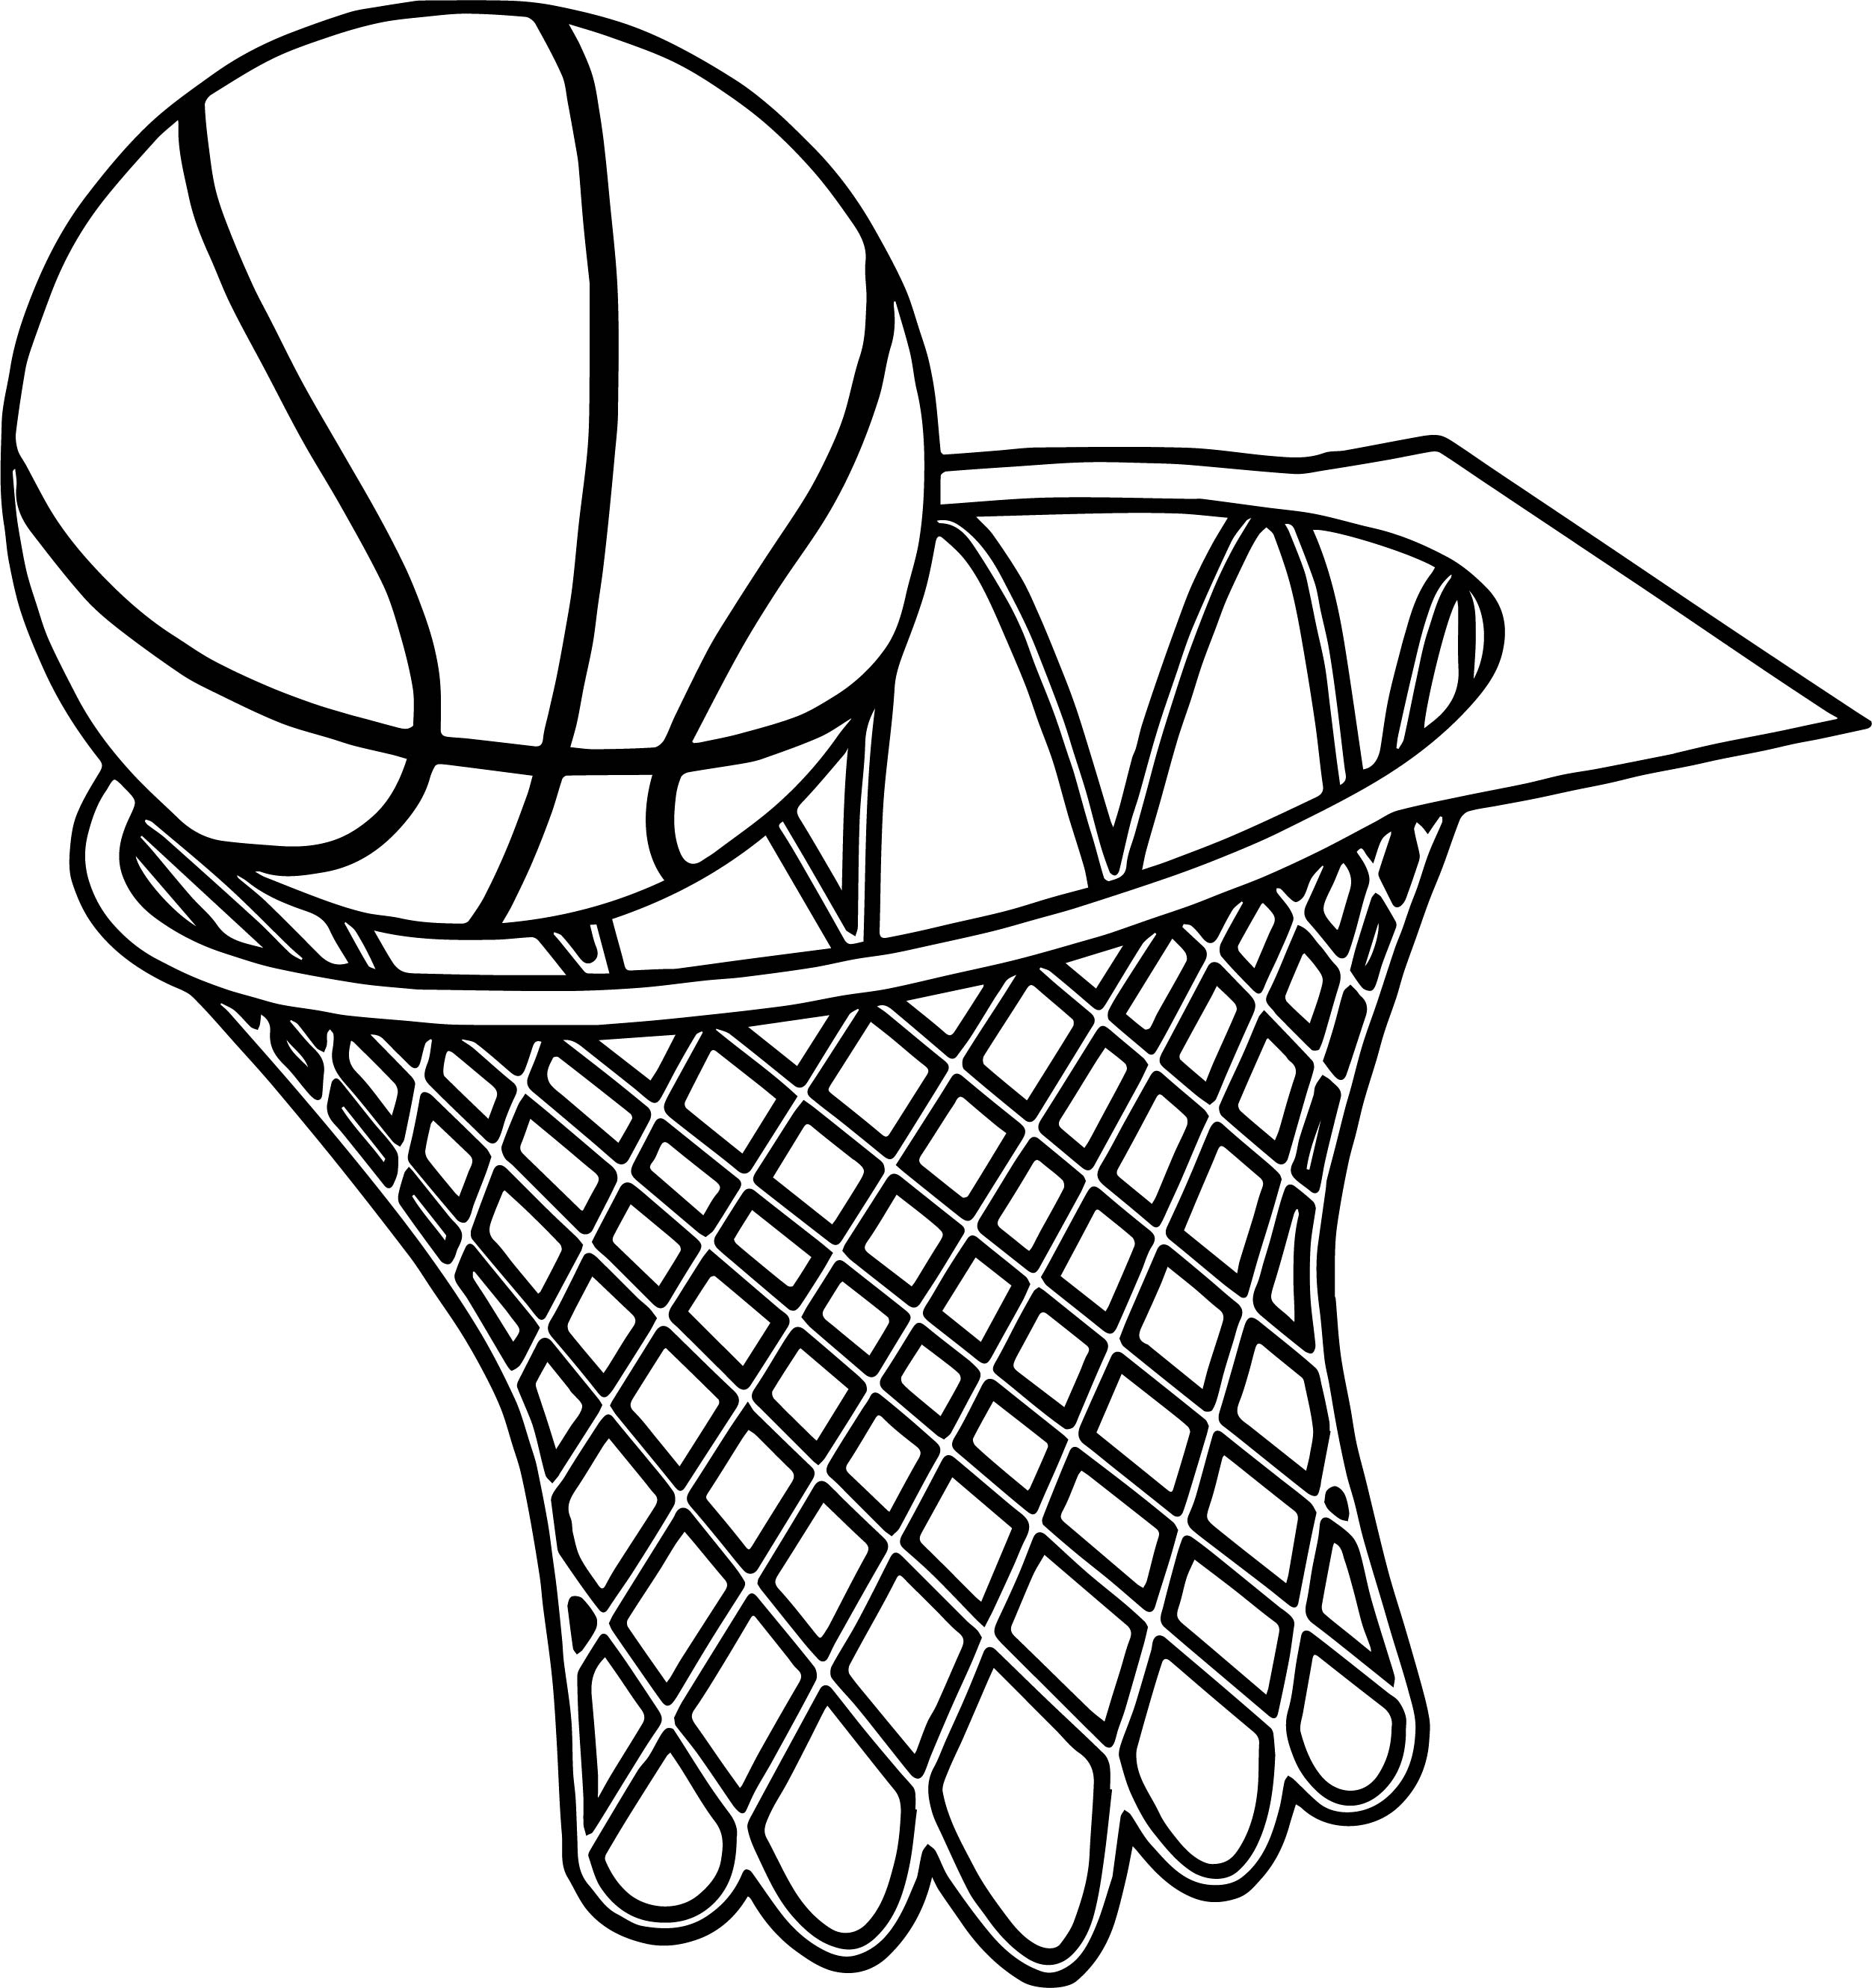 Line Drawing Net : Basketball goal drawing at getdrawings free for